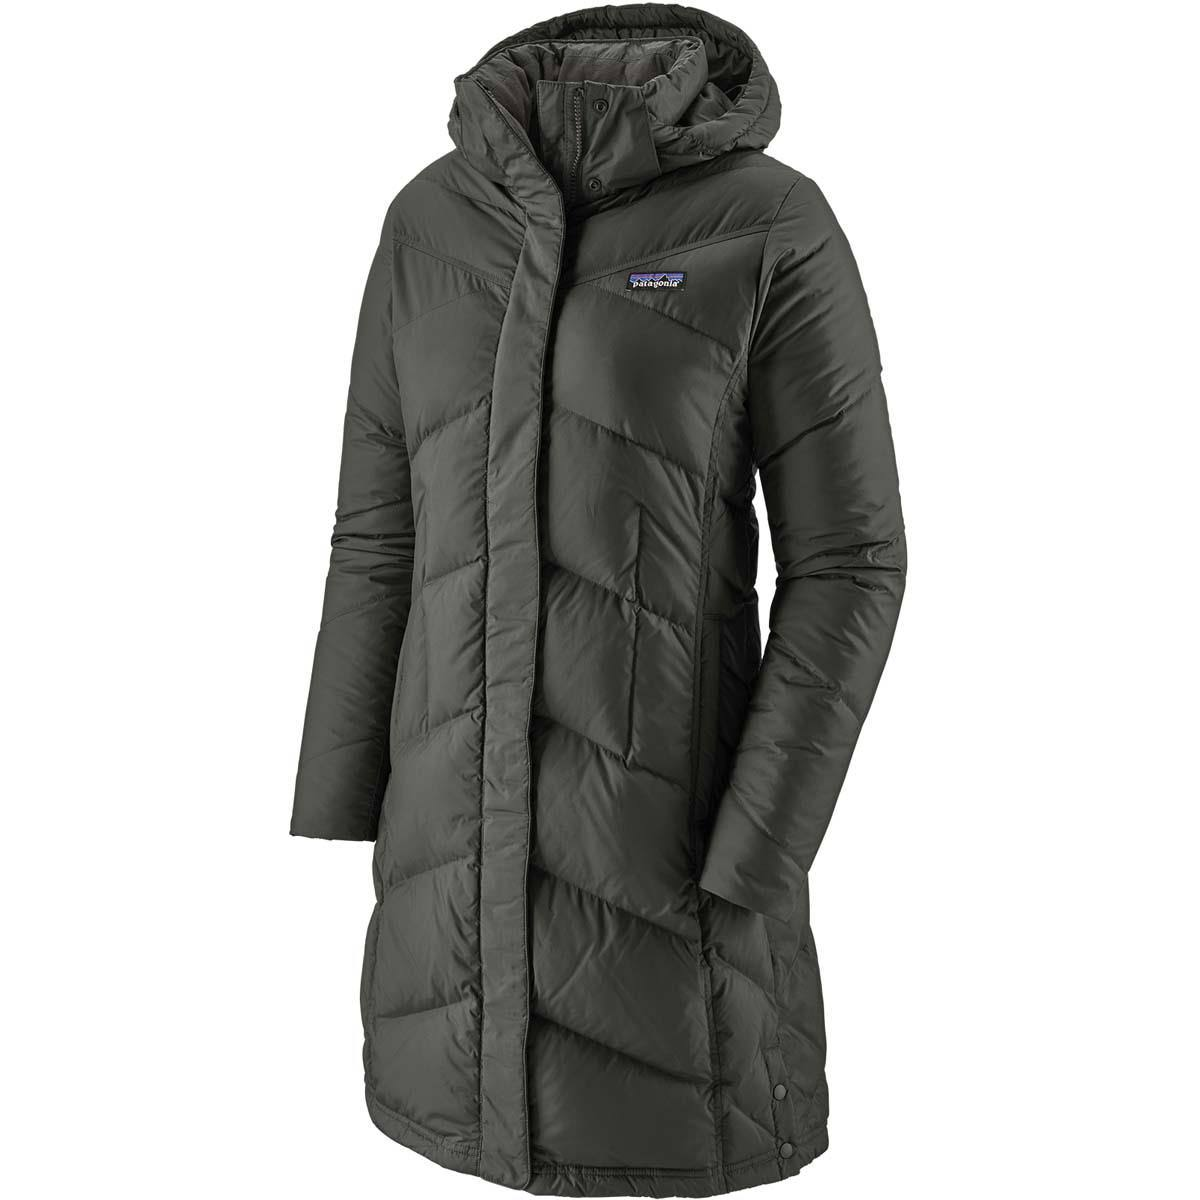 Patagonia Women's Down with It Parka - Forge Grey